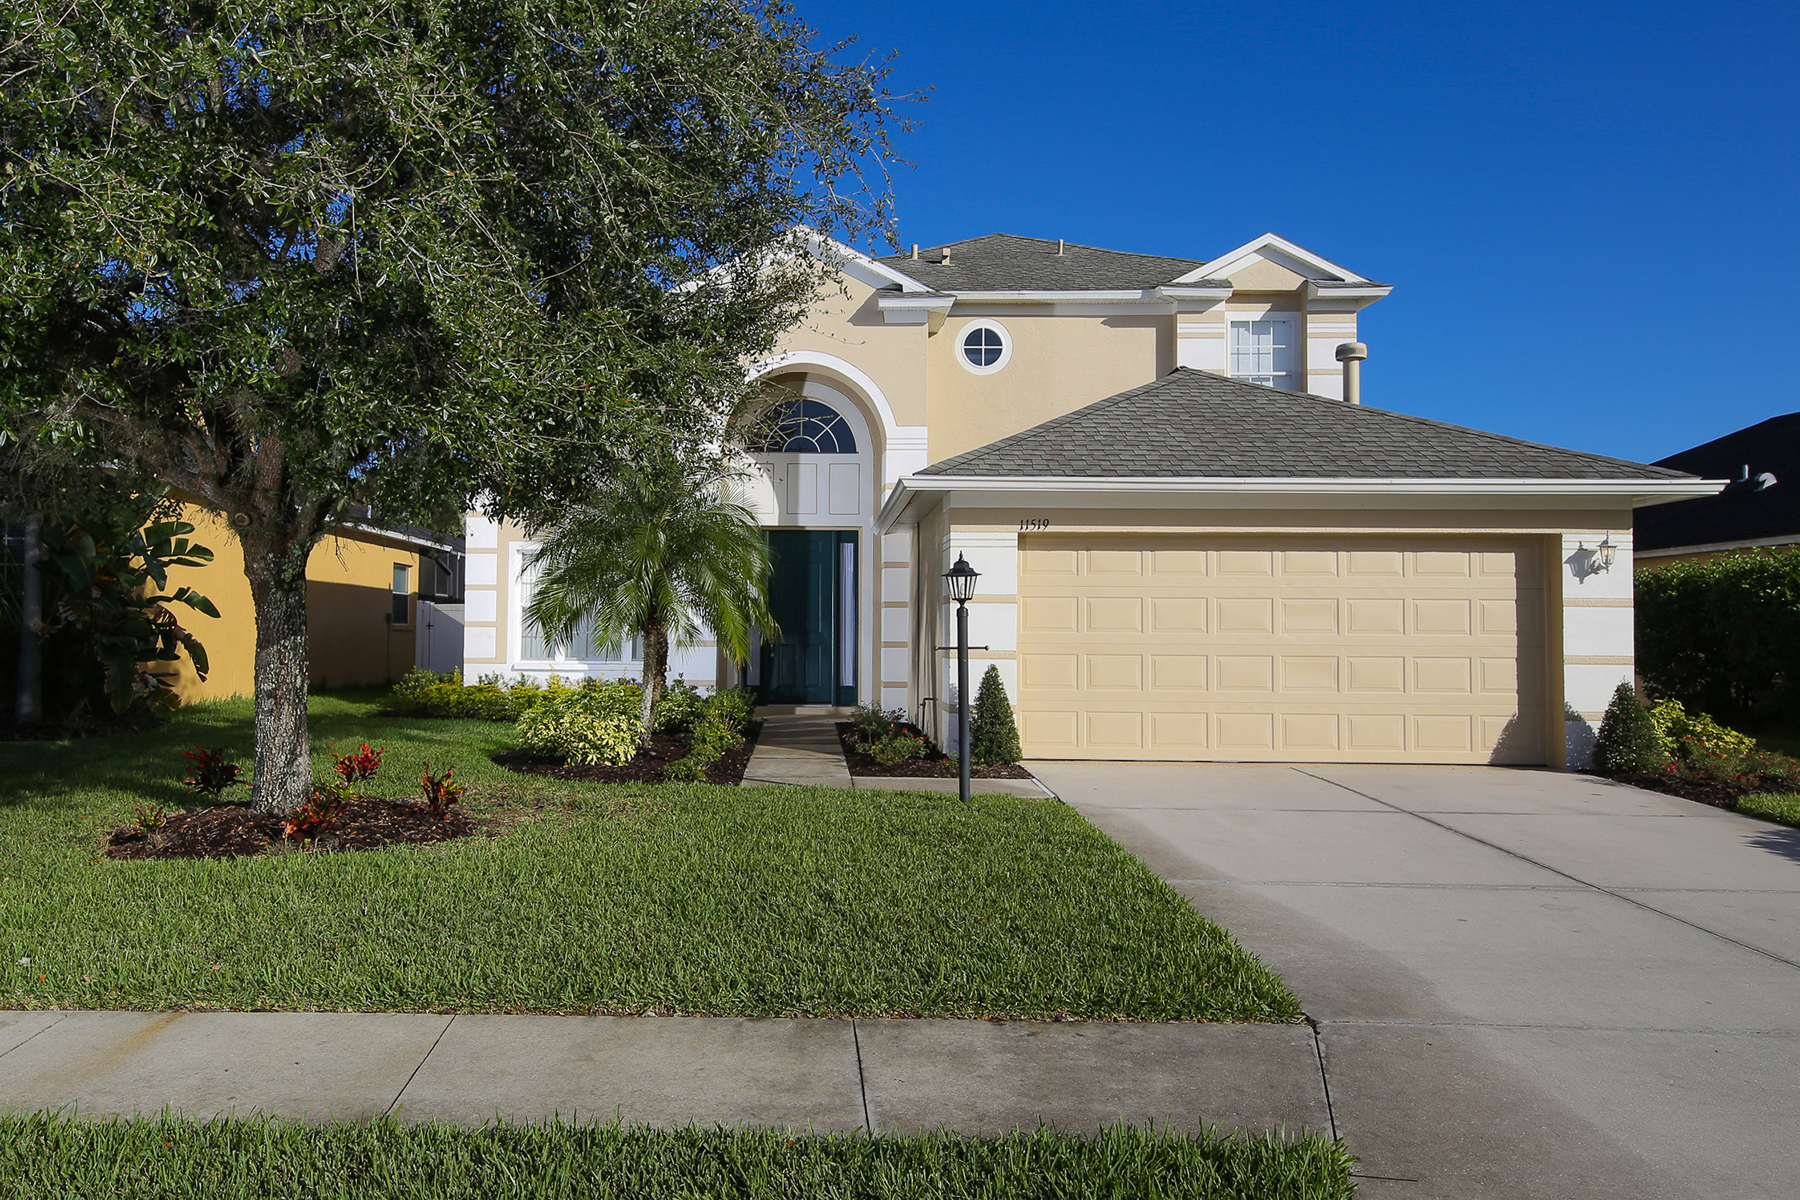 Villa per Vendita alle ore RIVERWALK VILLAGE 11519 Pimpernel Dr Lakewood Ranch, Florida 34202 Stati Uniti